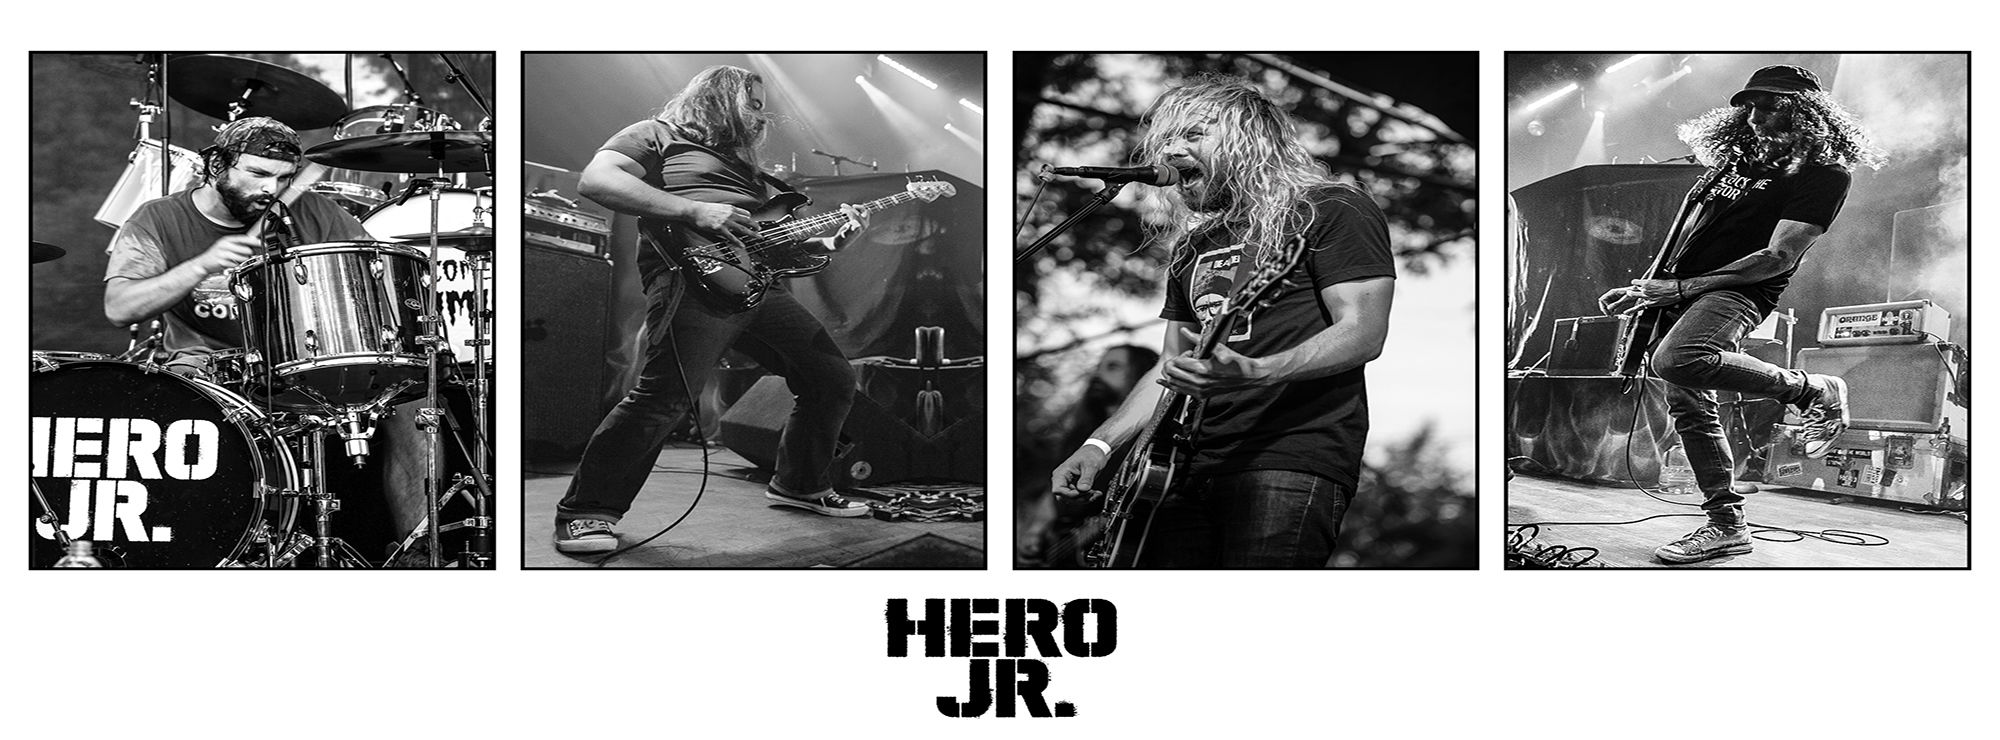 Hero Jr band members